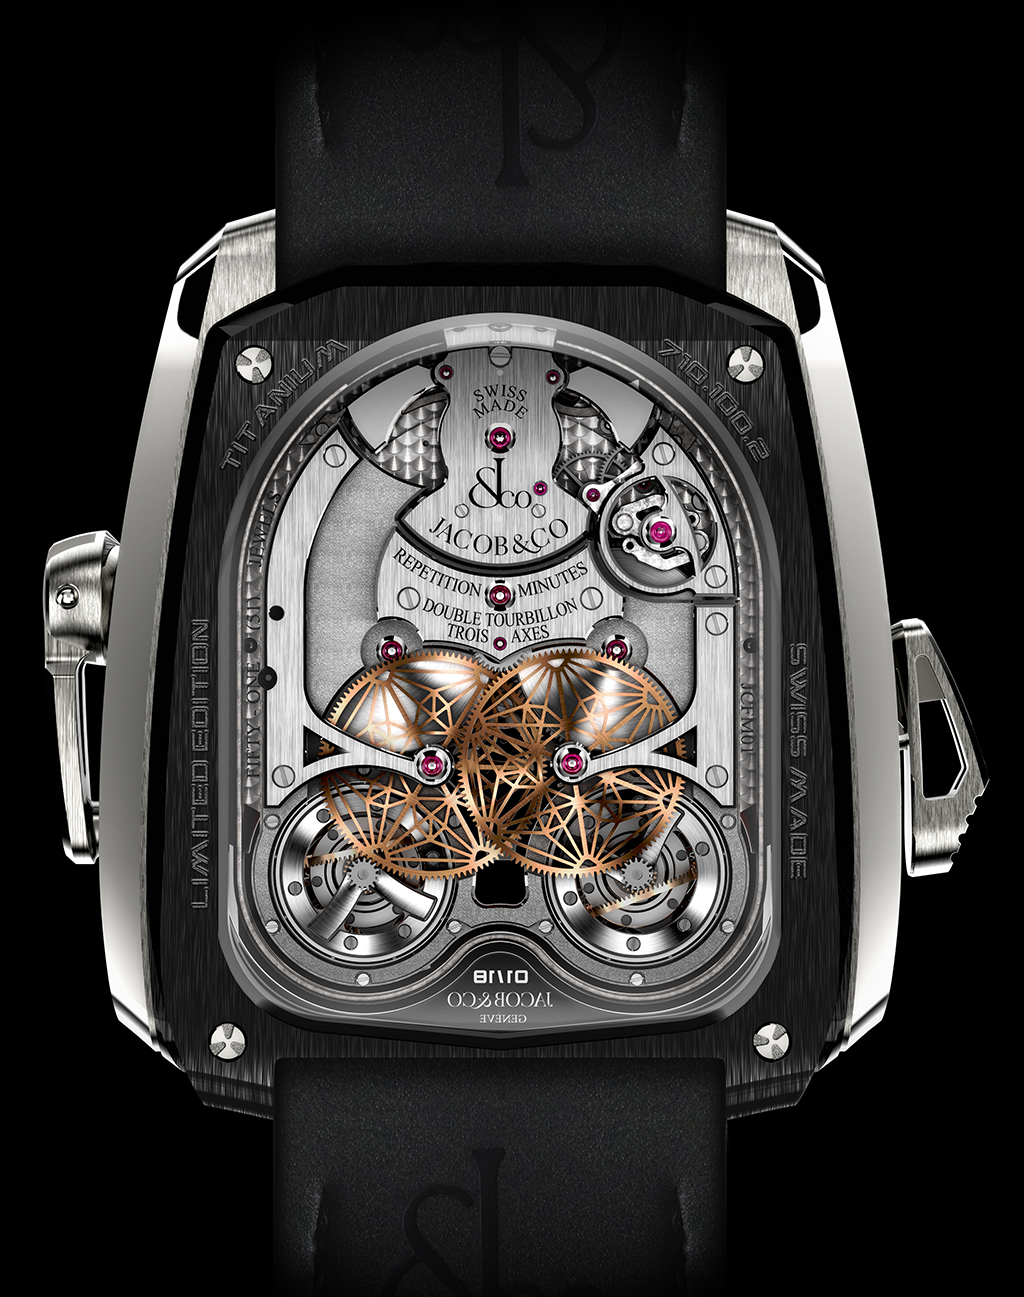 Jacob-Co-Twin-Turbo-Twin-Triple-Axis-Tourbillon-Minute-Repeater-2.jpg